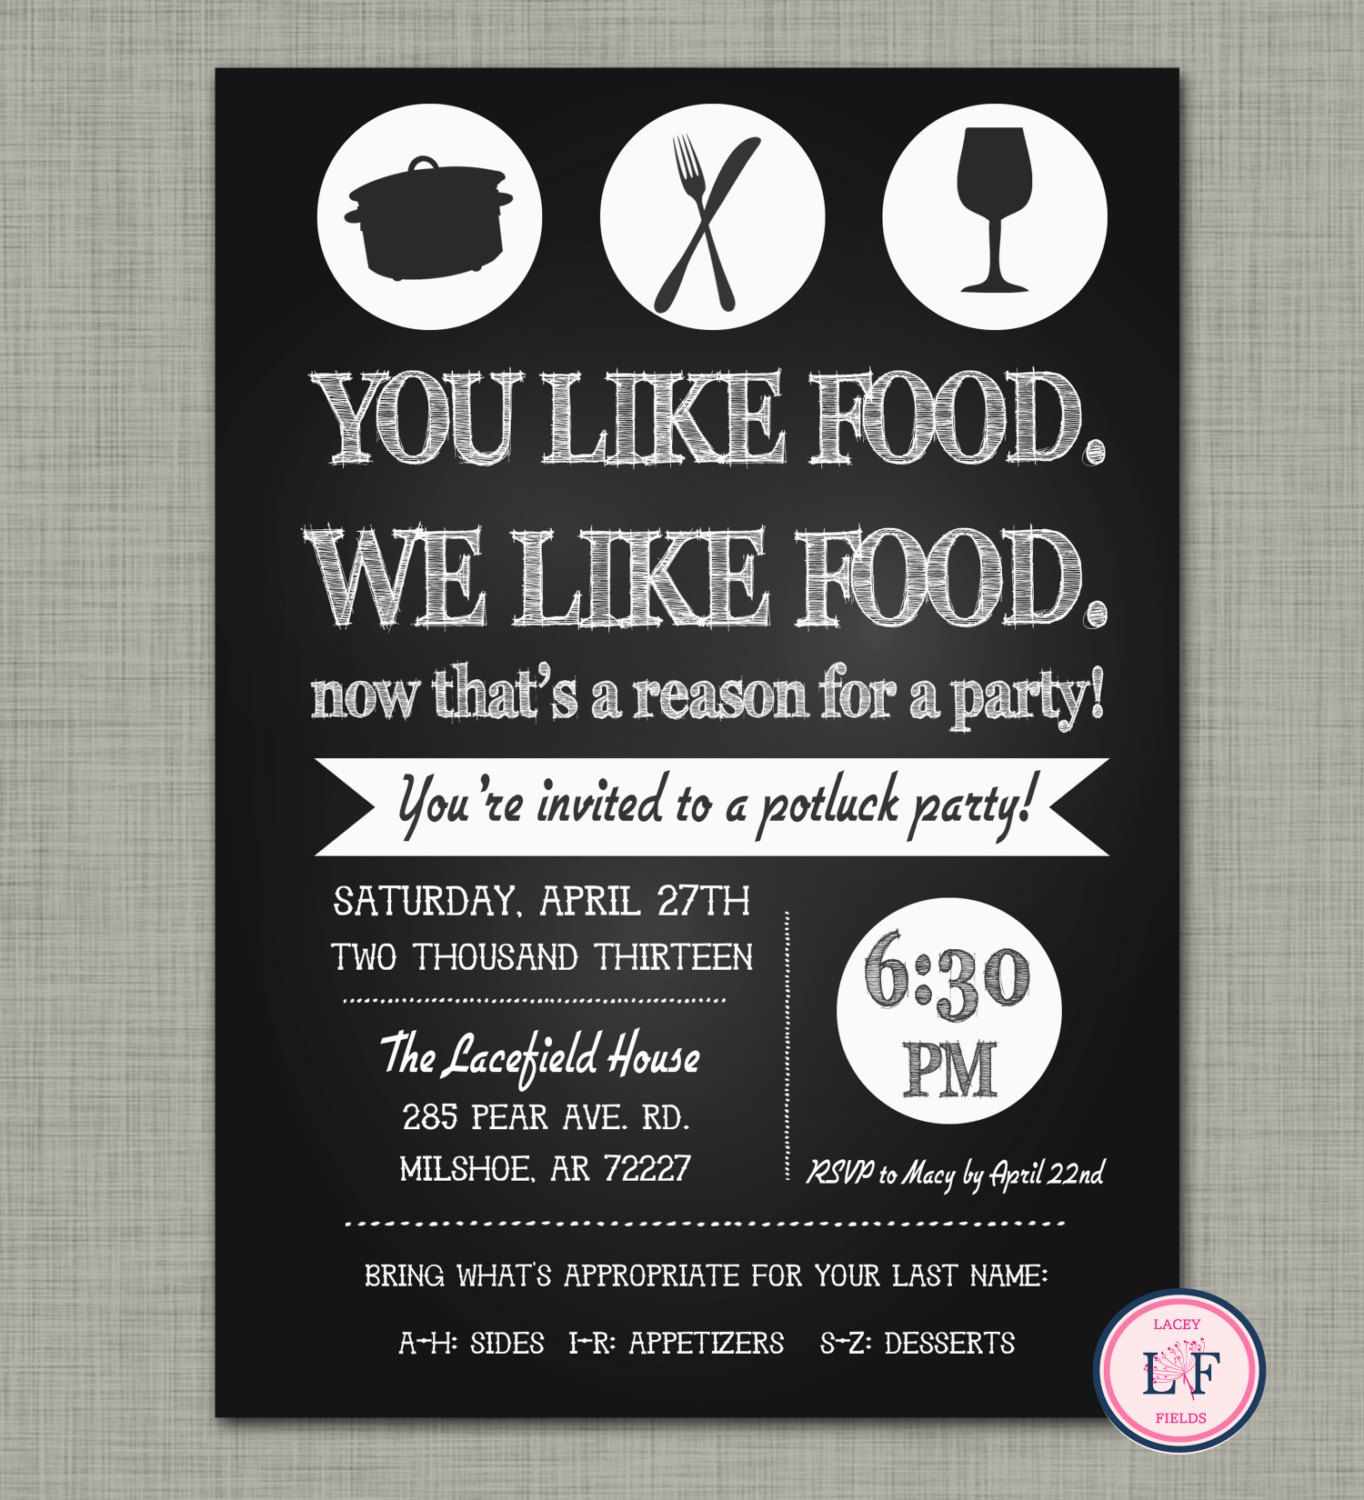 Chalkboard pot luck party invite just because party chalkboard pot luck party invite just because party housewarming party dinner party invitation kitchen party kitchen shower invite stopboris